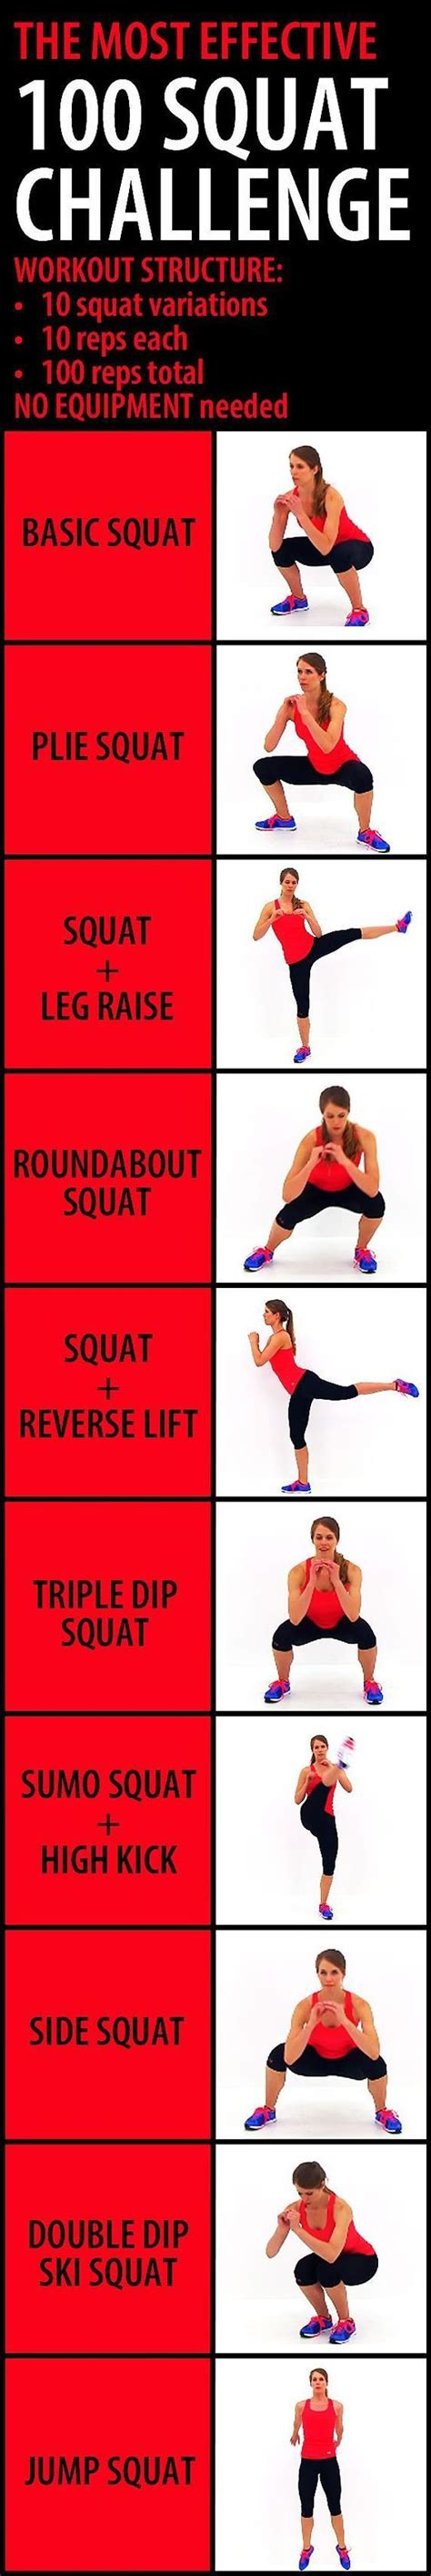 The Most Effective 100 Squat Challenge This Challenge